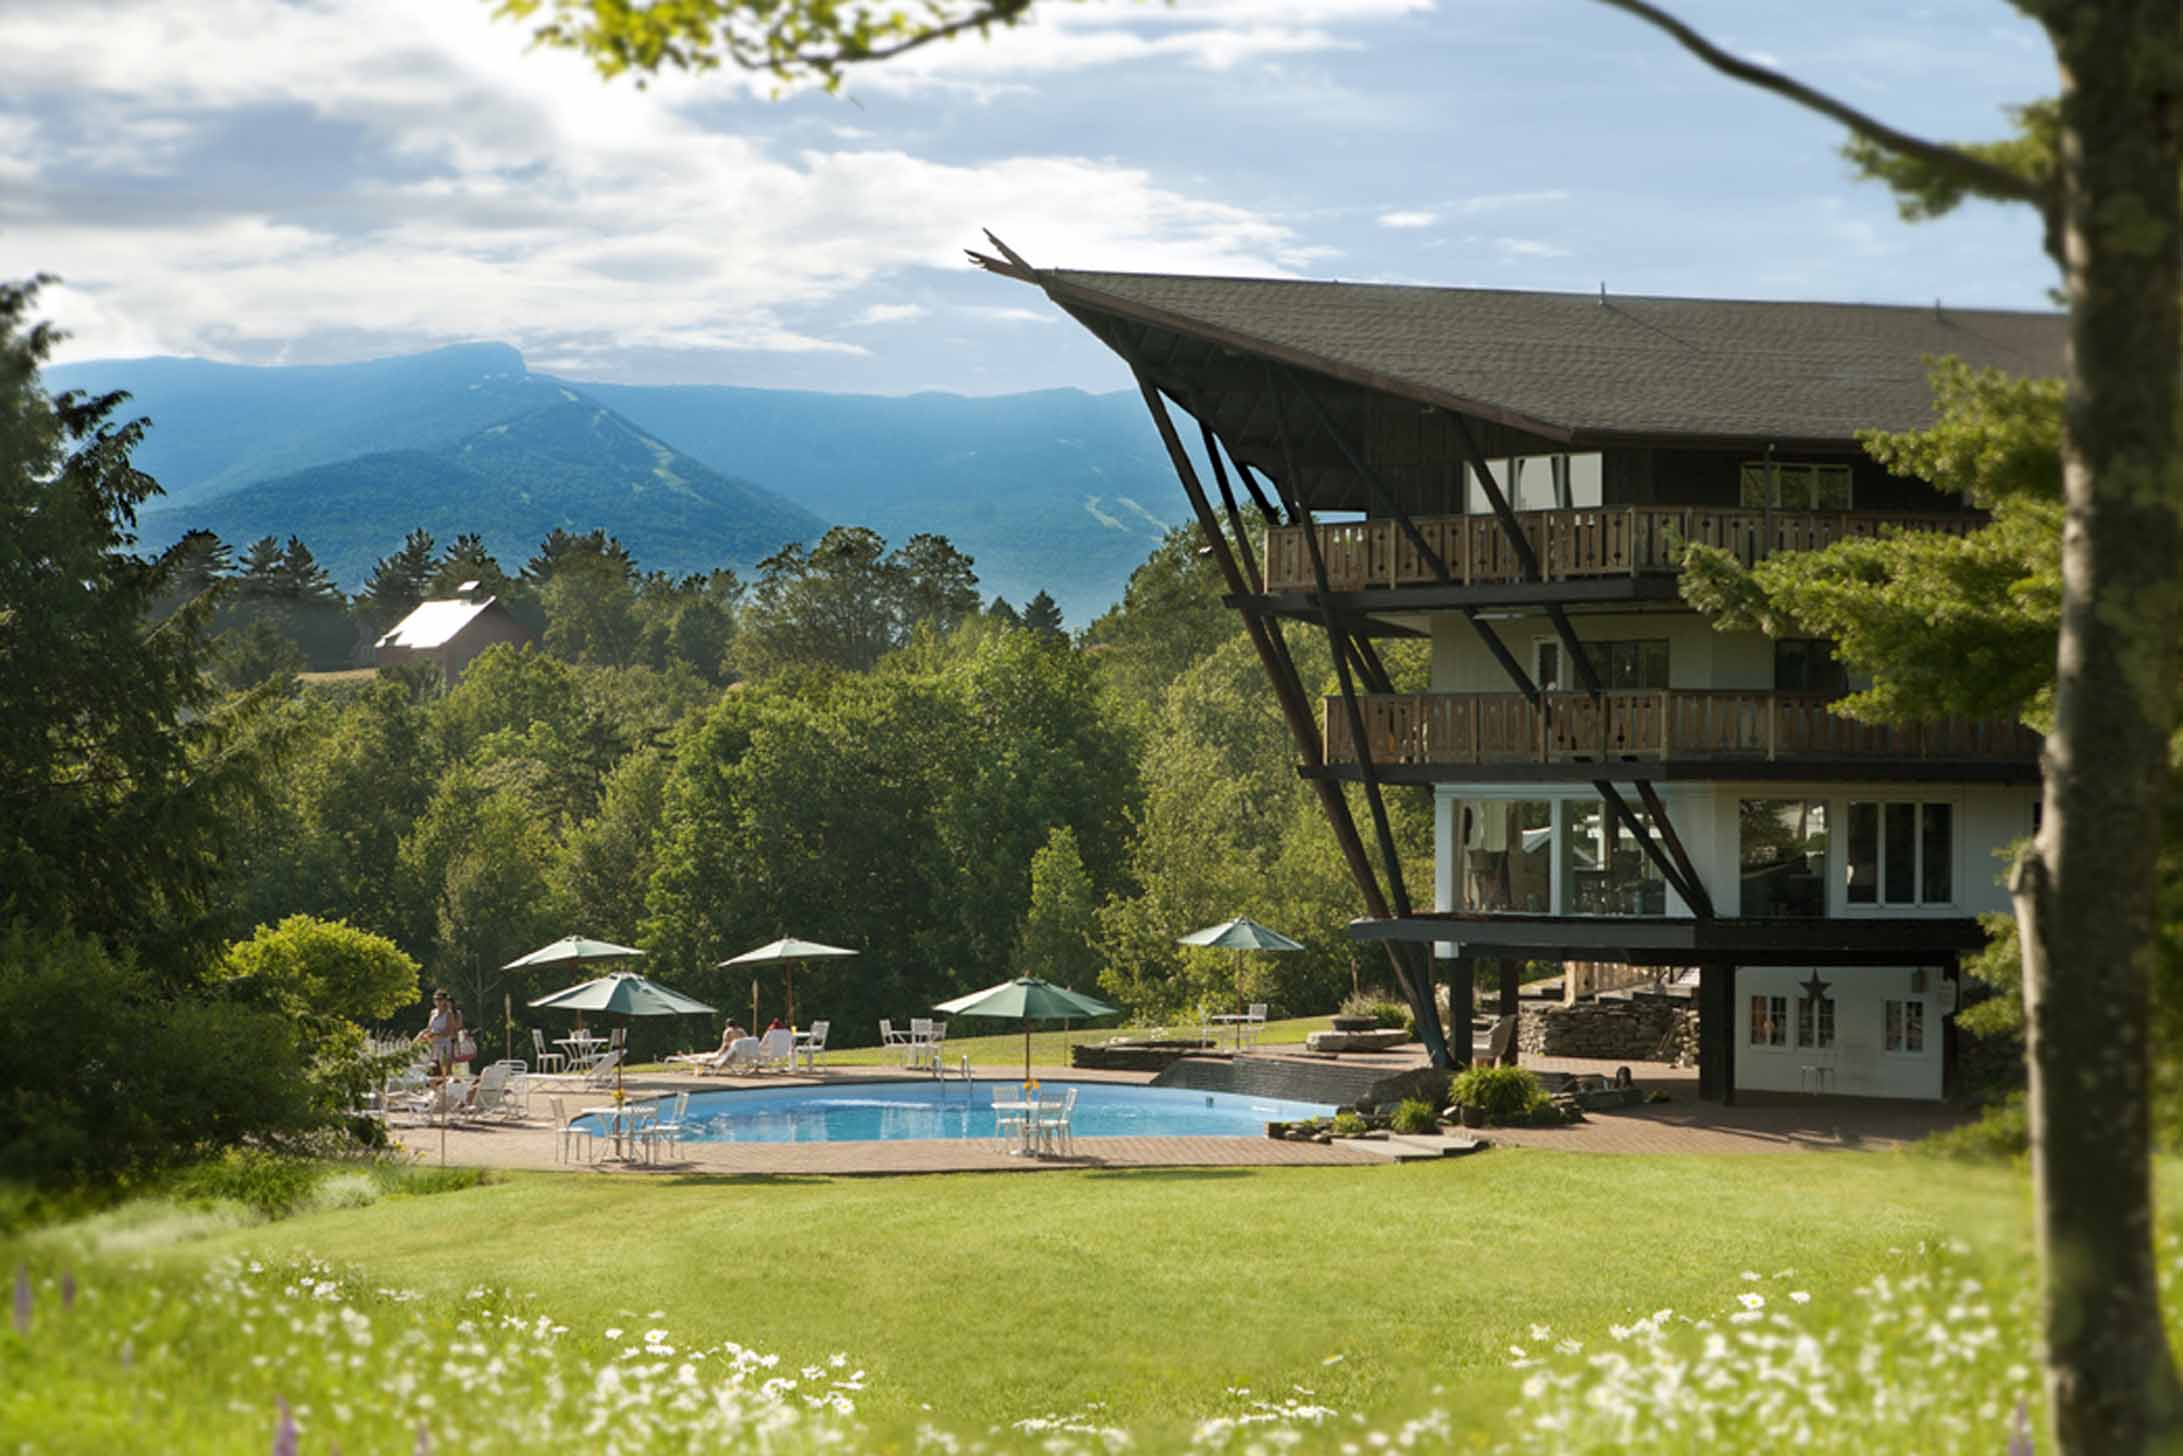 The Stowehof – Stowe, VT